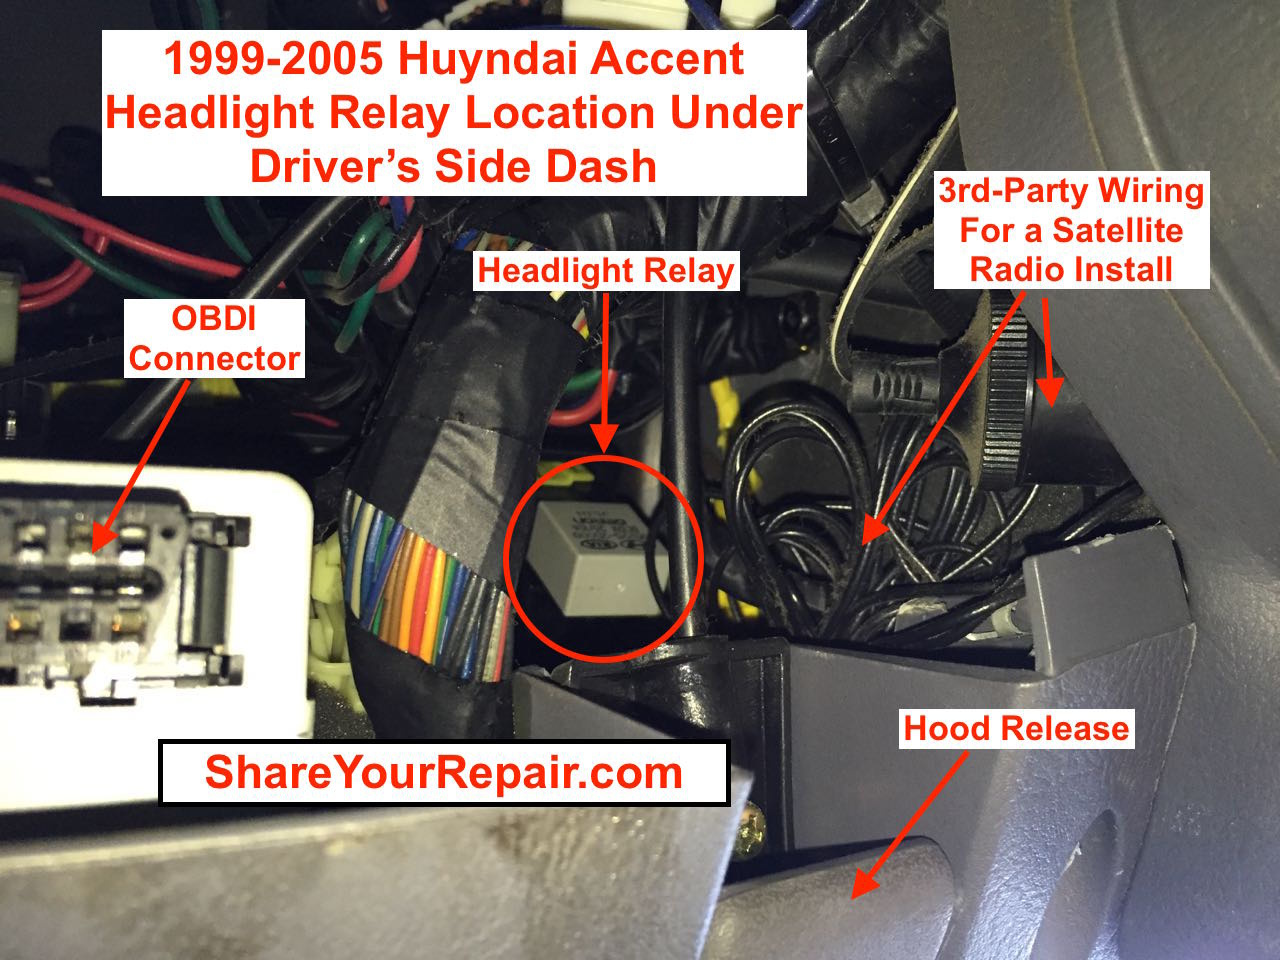 2007 Hyundai Accent Ignition Wiring Diagram further Escape Fuel Pump Wiring likewise 2004 Subaru Impreza Wrx Wiring Diagram besides Jeep Patriot Fuse Box Diagram Under Hood also 2005 Ford 500 Engine Diagram. on incredibleediblecar1